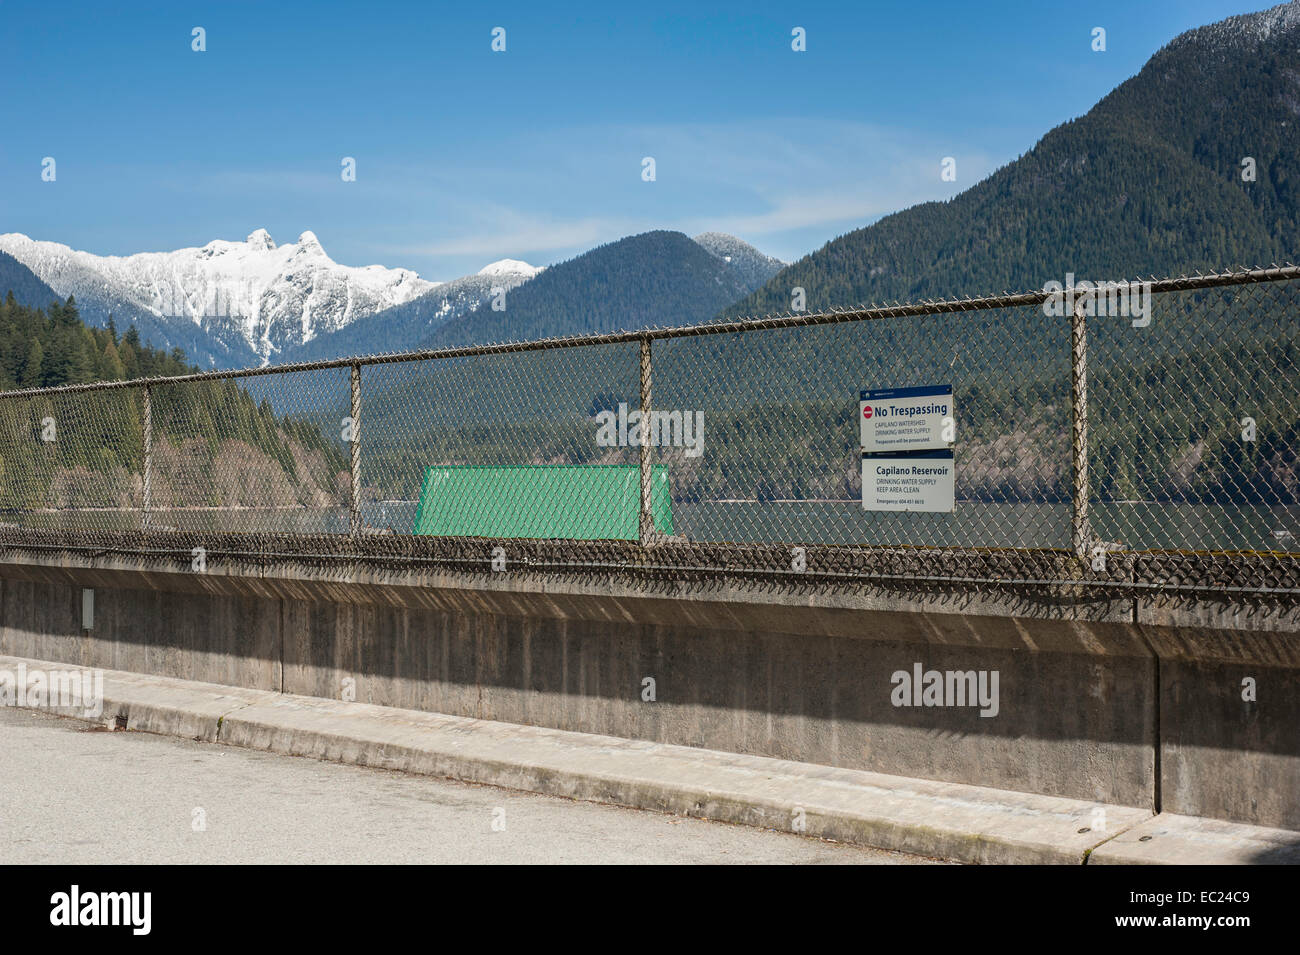 Capilano watershed as viewed through chainlink fencing for public viewing access. - Stock Image